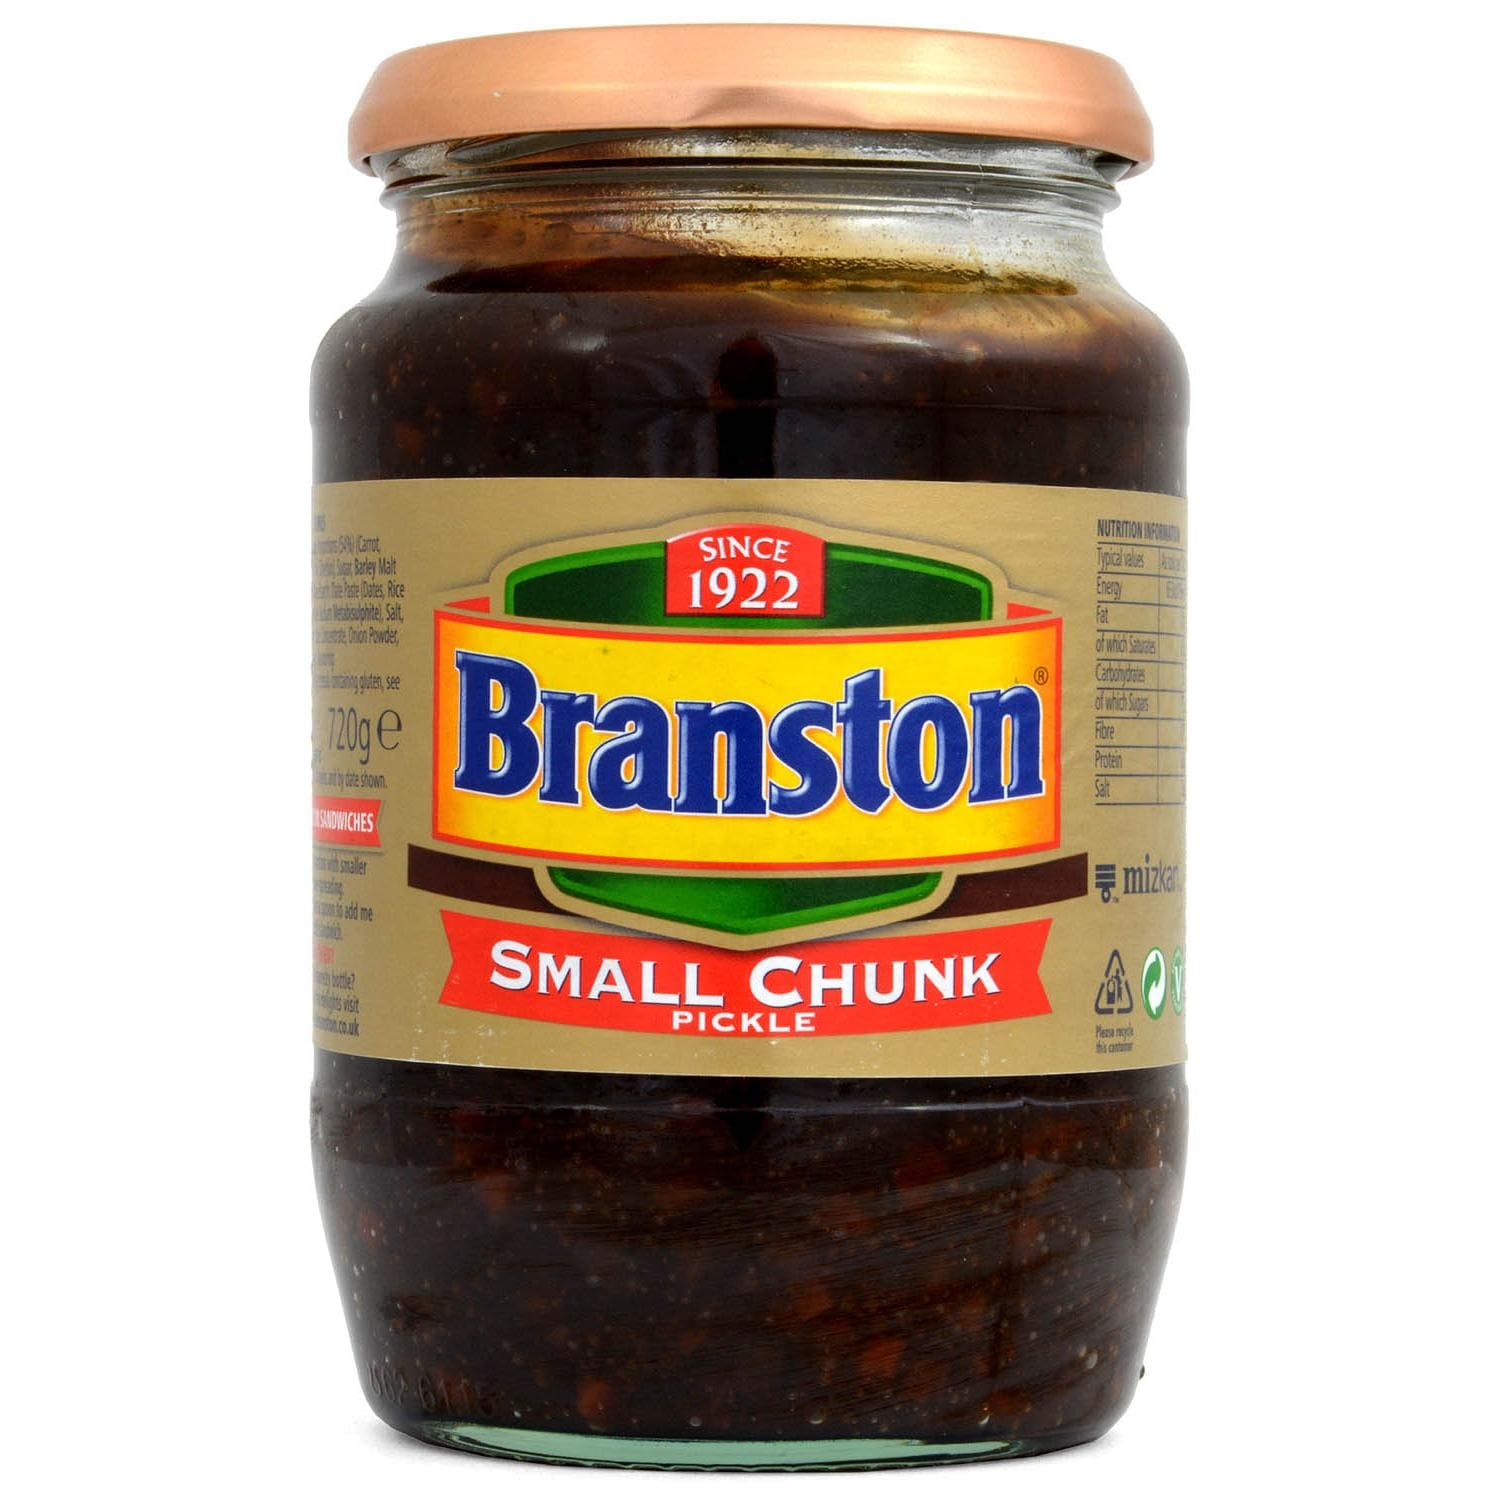 Branston Small Chunk Pickle 720g - Würzcreme